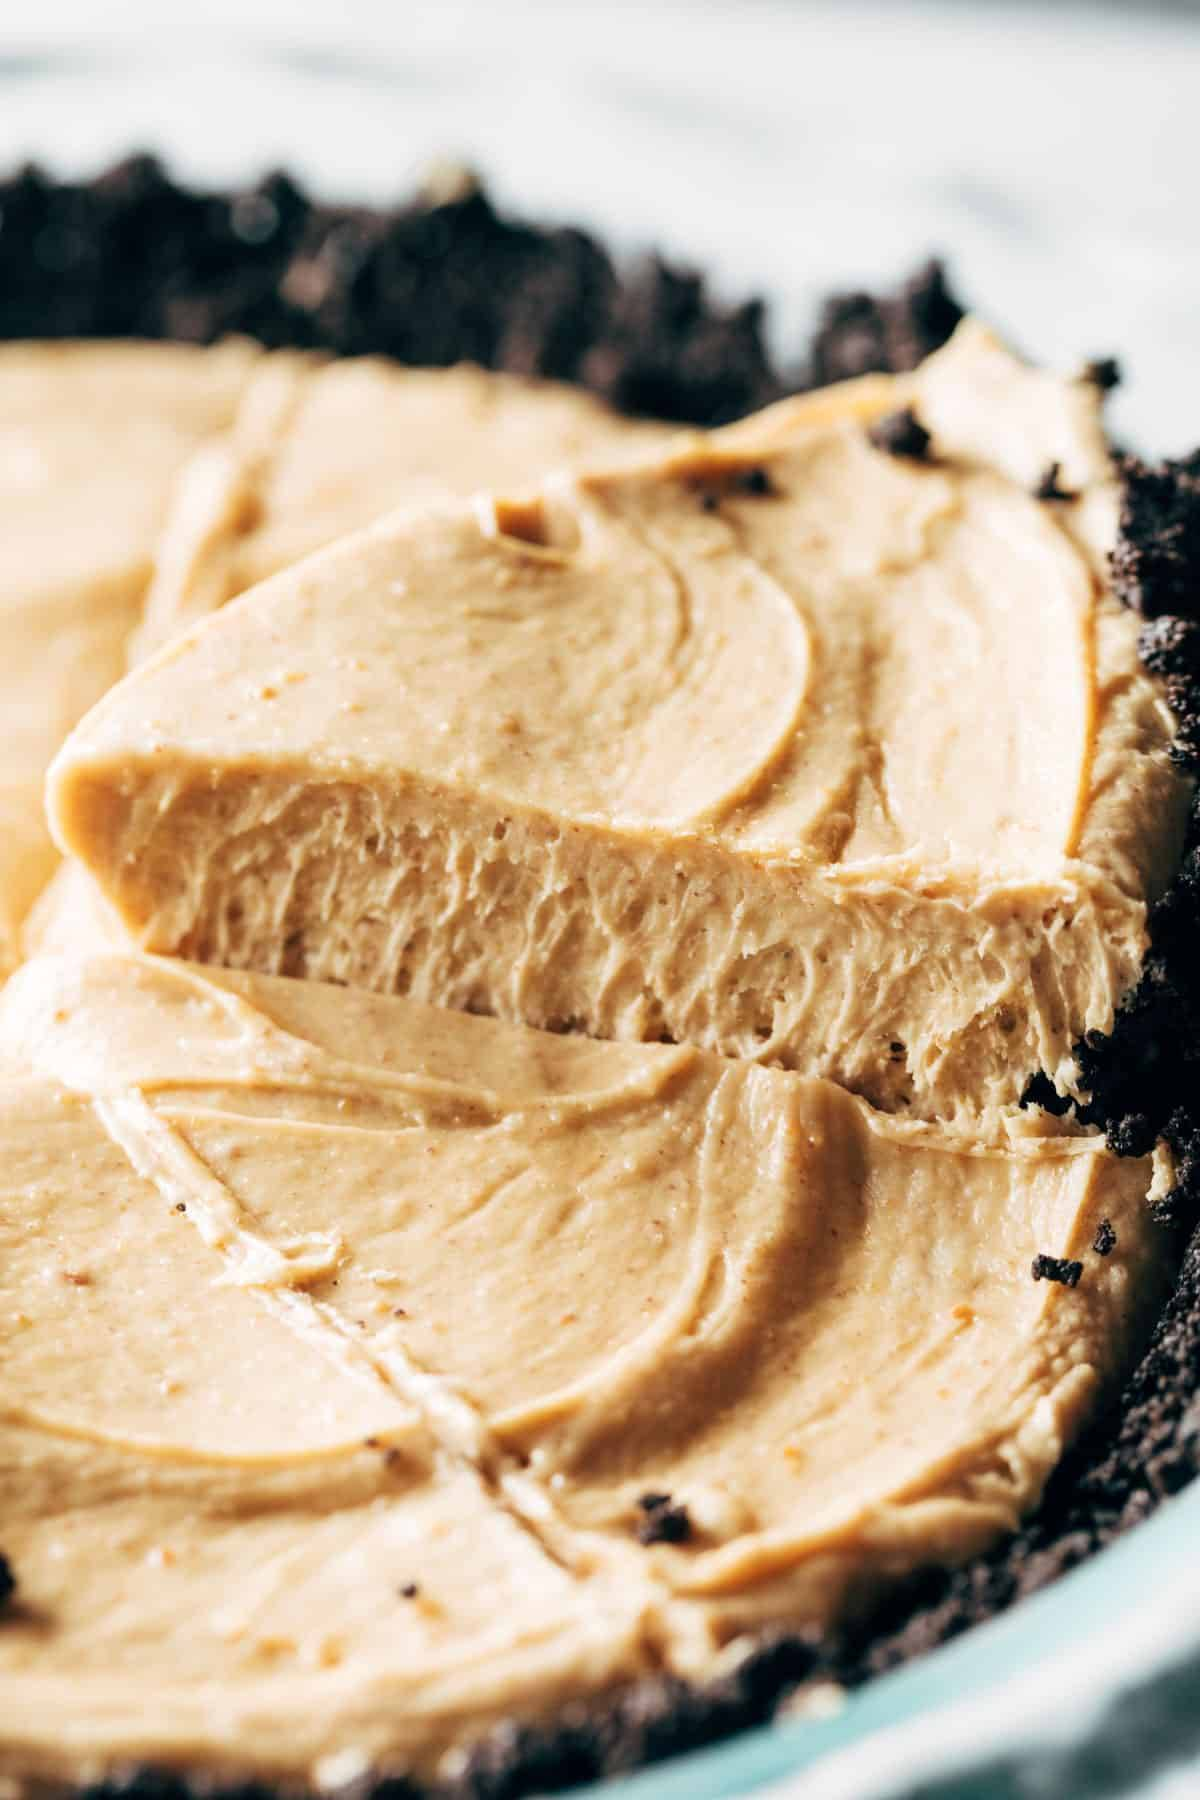 Lifting slice of peanut butter pie.